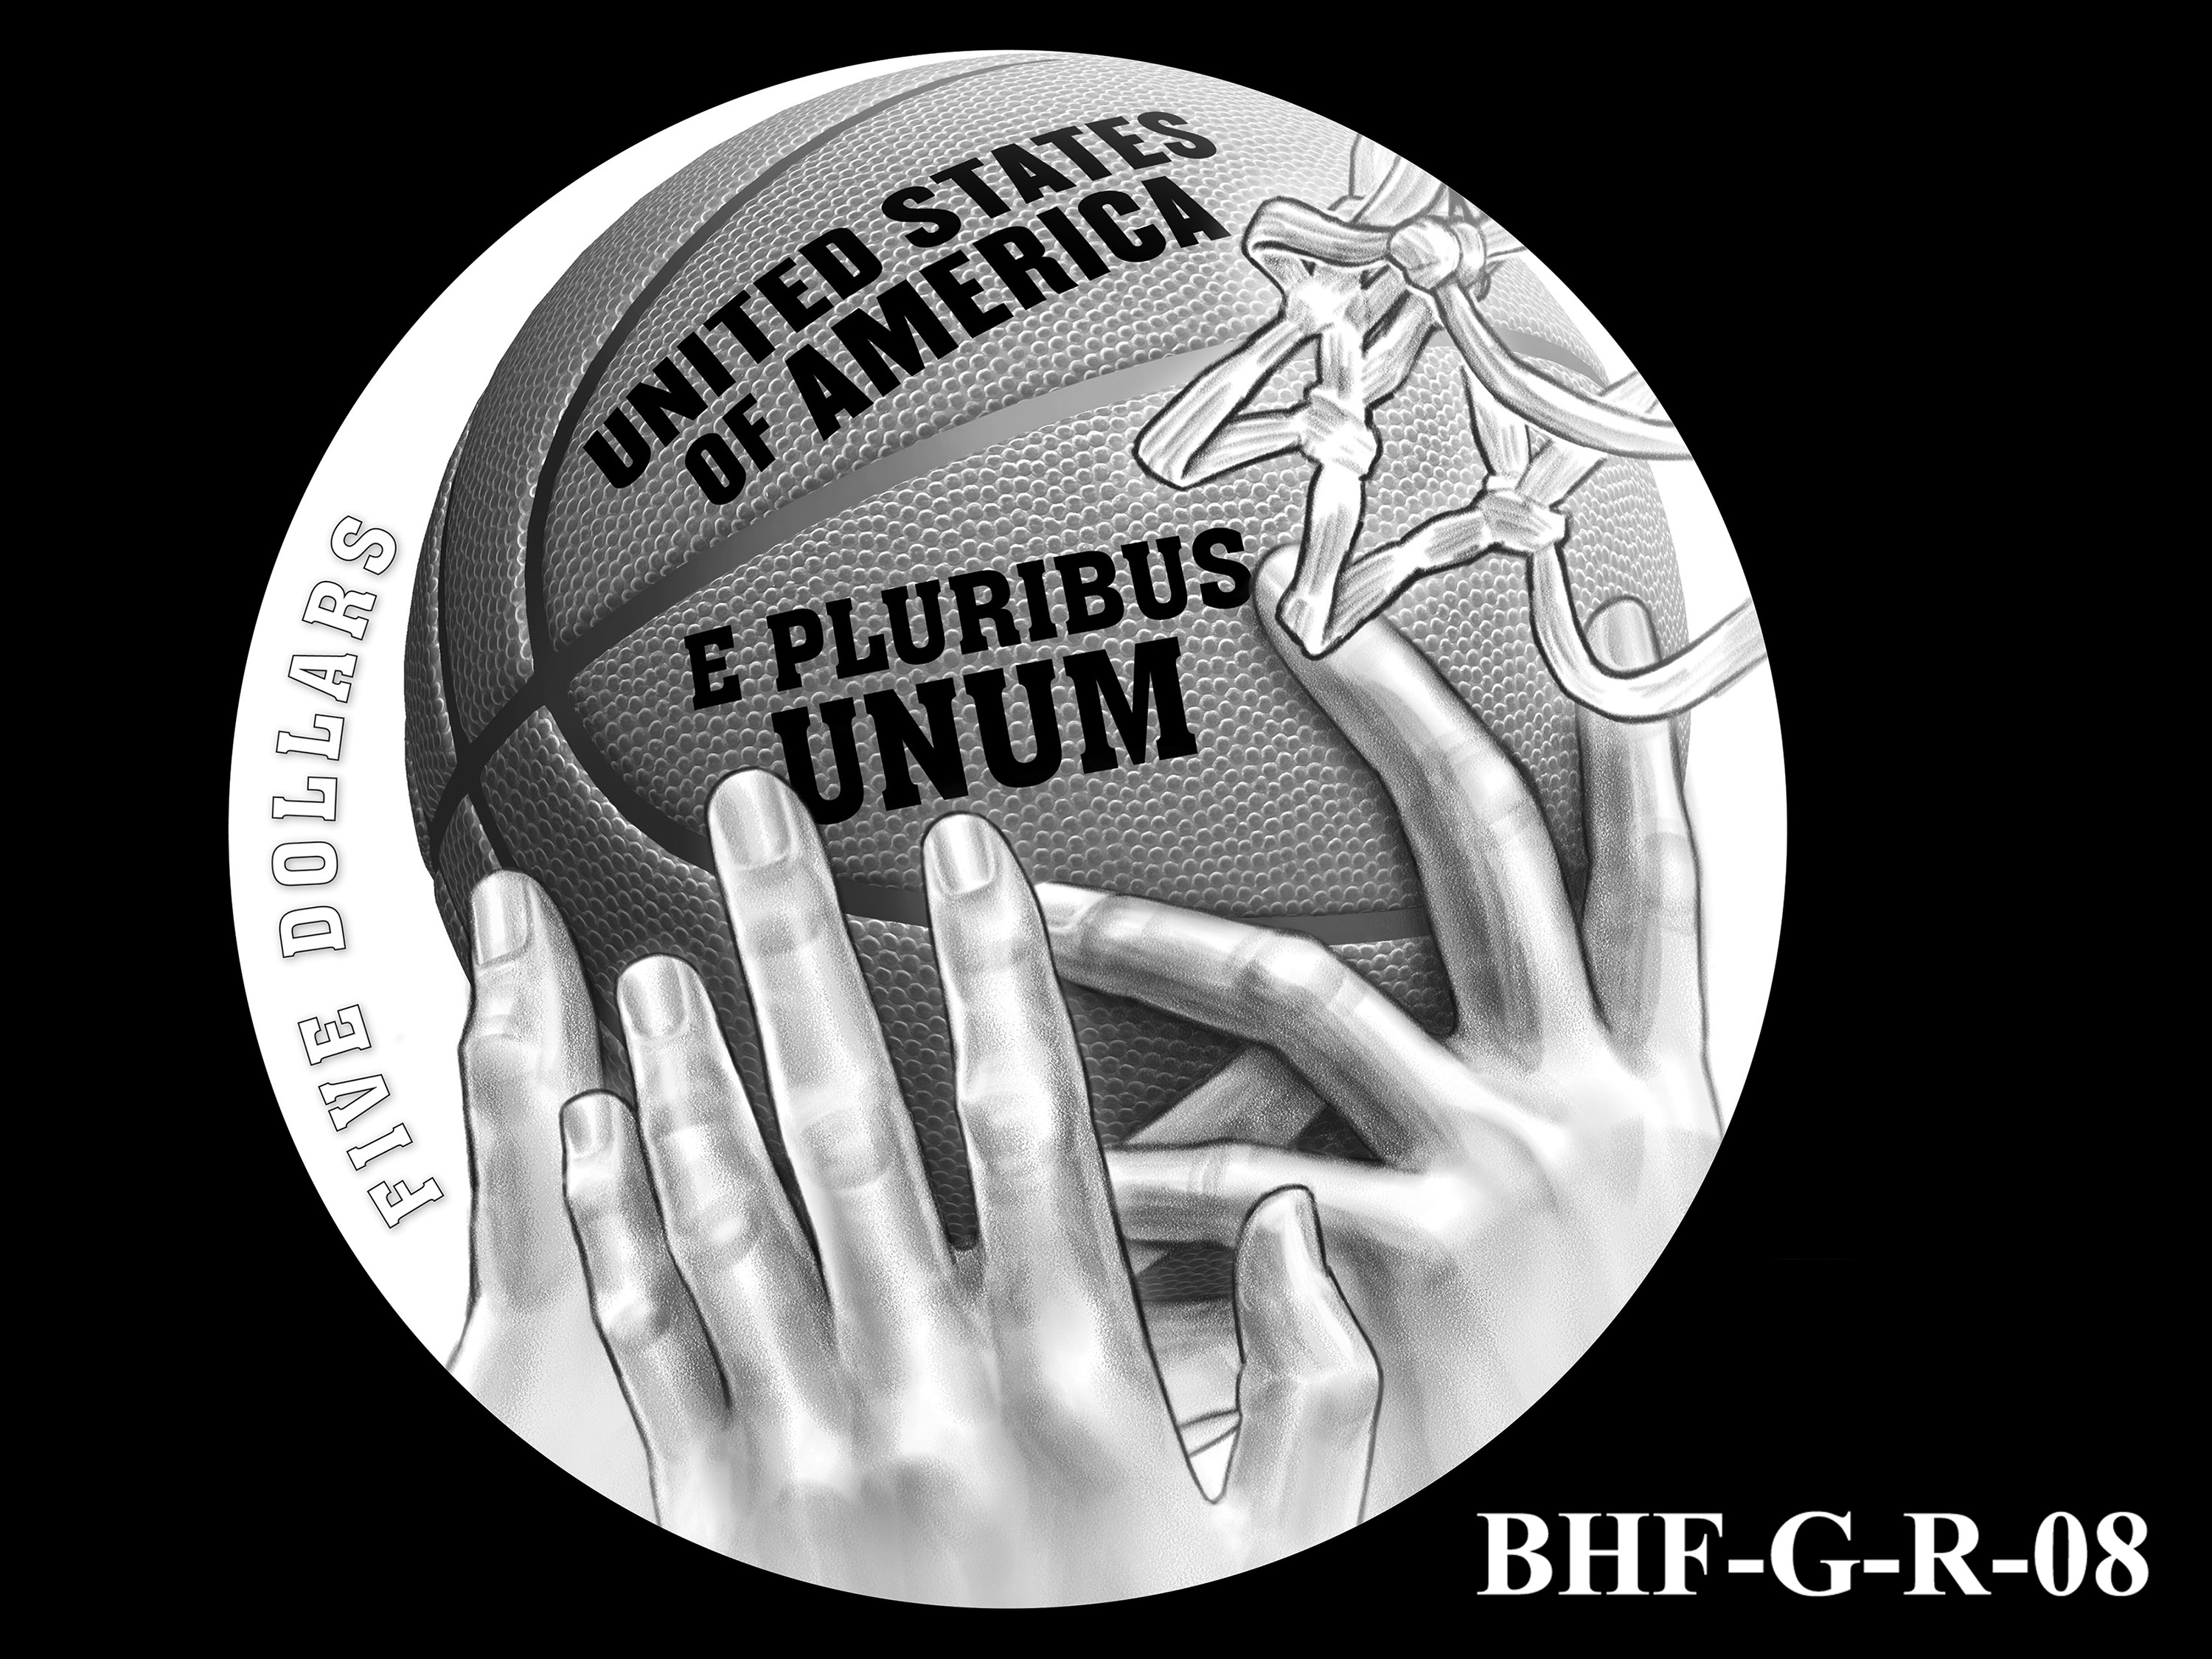 BHF-G-R-08 -- 2020 Basketball Hall of Fame Commemorative Coin Program - Gold Reverse